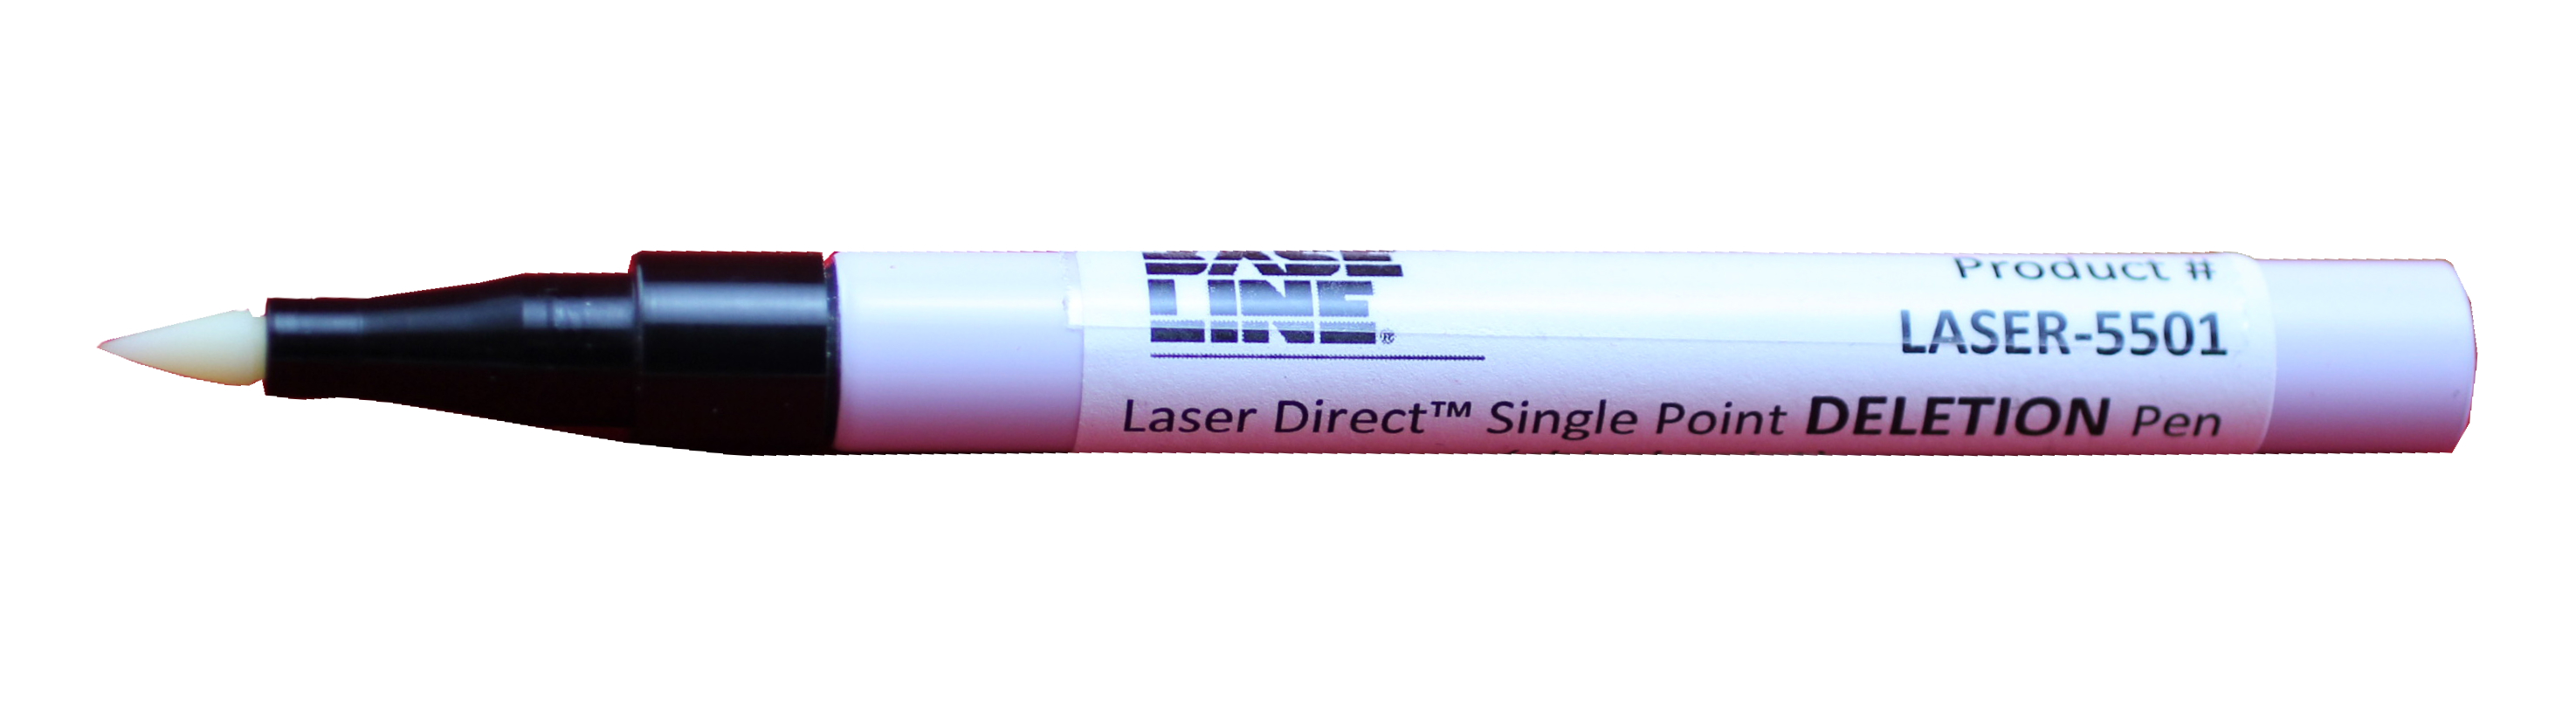 Baseline/Lithco Laser Plate Deletion Pen